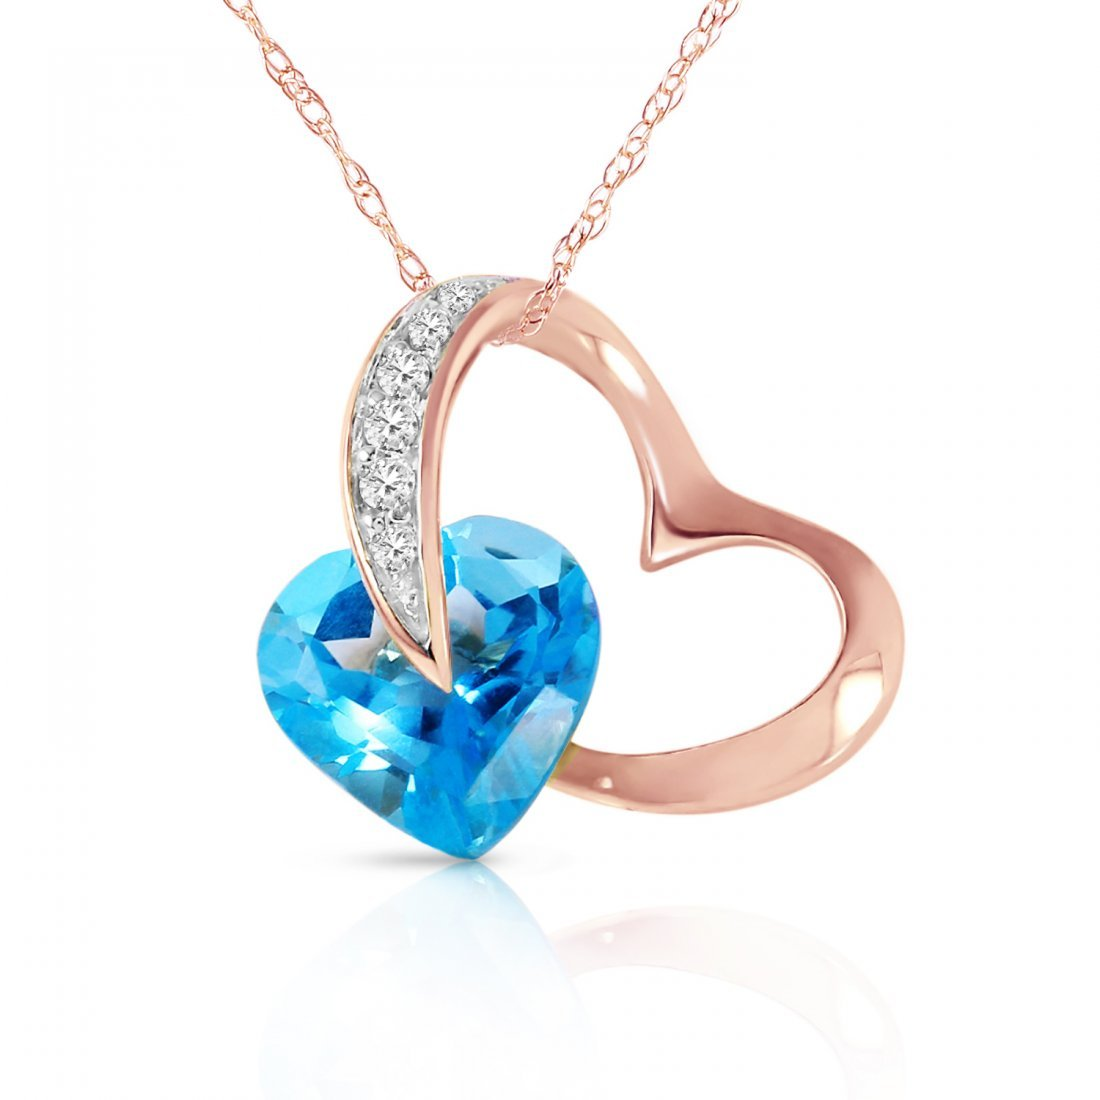 Genuine 4.6 ctw Blue Topaz & Diamond Necklace Jewelry